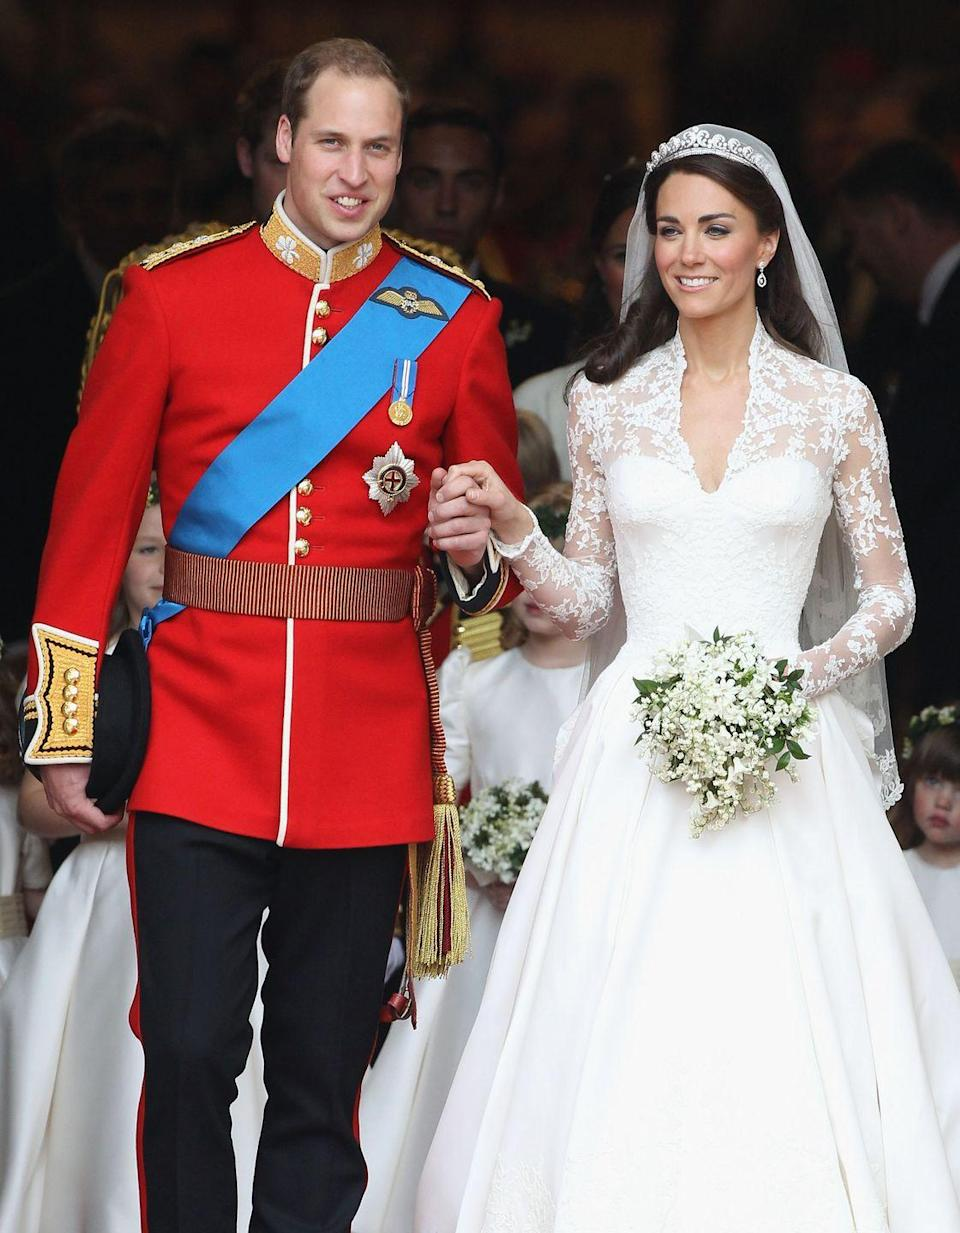 "<p>When you're a member of the royal family, you either go big or go home. This royal wedding cost $34 million, and almost all of it ($33 million) went to security, per <em><a href=""https://www.insider.com/royal-wedding-costs-2018-10#:~:text=Prince%20William%20and%20Kate%20Middleton's%20wedding%20cost%20a%20reported%20%2434%20million&text=It%20was%20estimated%20that%20security,dollars%2C%20according%20to%20ABC%20News."" rel=""nofollow noopener"" target=""_blank"" data-ylk=""slk:Insider"" class=""link rapid-noclick-resp"">Insider</a></em><a href=""https://www.insider.com/royal-wedding-costs-2018-10#:~:text=Prince%20William%20and%20Kate%20Middleton's%20wedding%20cost%20a%20reported%20%2434%20million&text=It%20was%20estimated%20that%20security,dollars%2C%20according%20to%20ABC%20News."" rel=""nofollow noopener"" target=""_blank"" data-ylk=""slk:."" class=""link rapid-noclick-resp"">.</a> </p>"